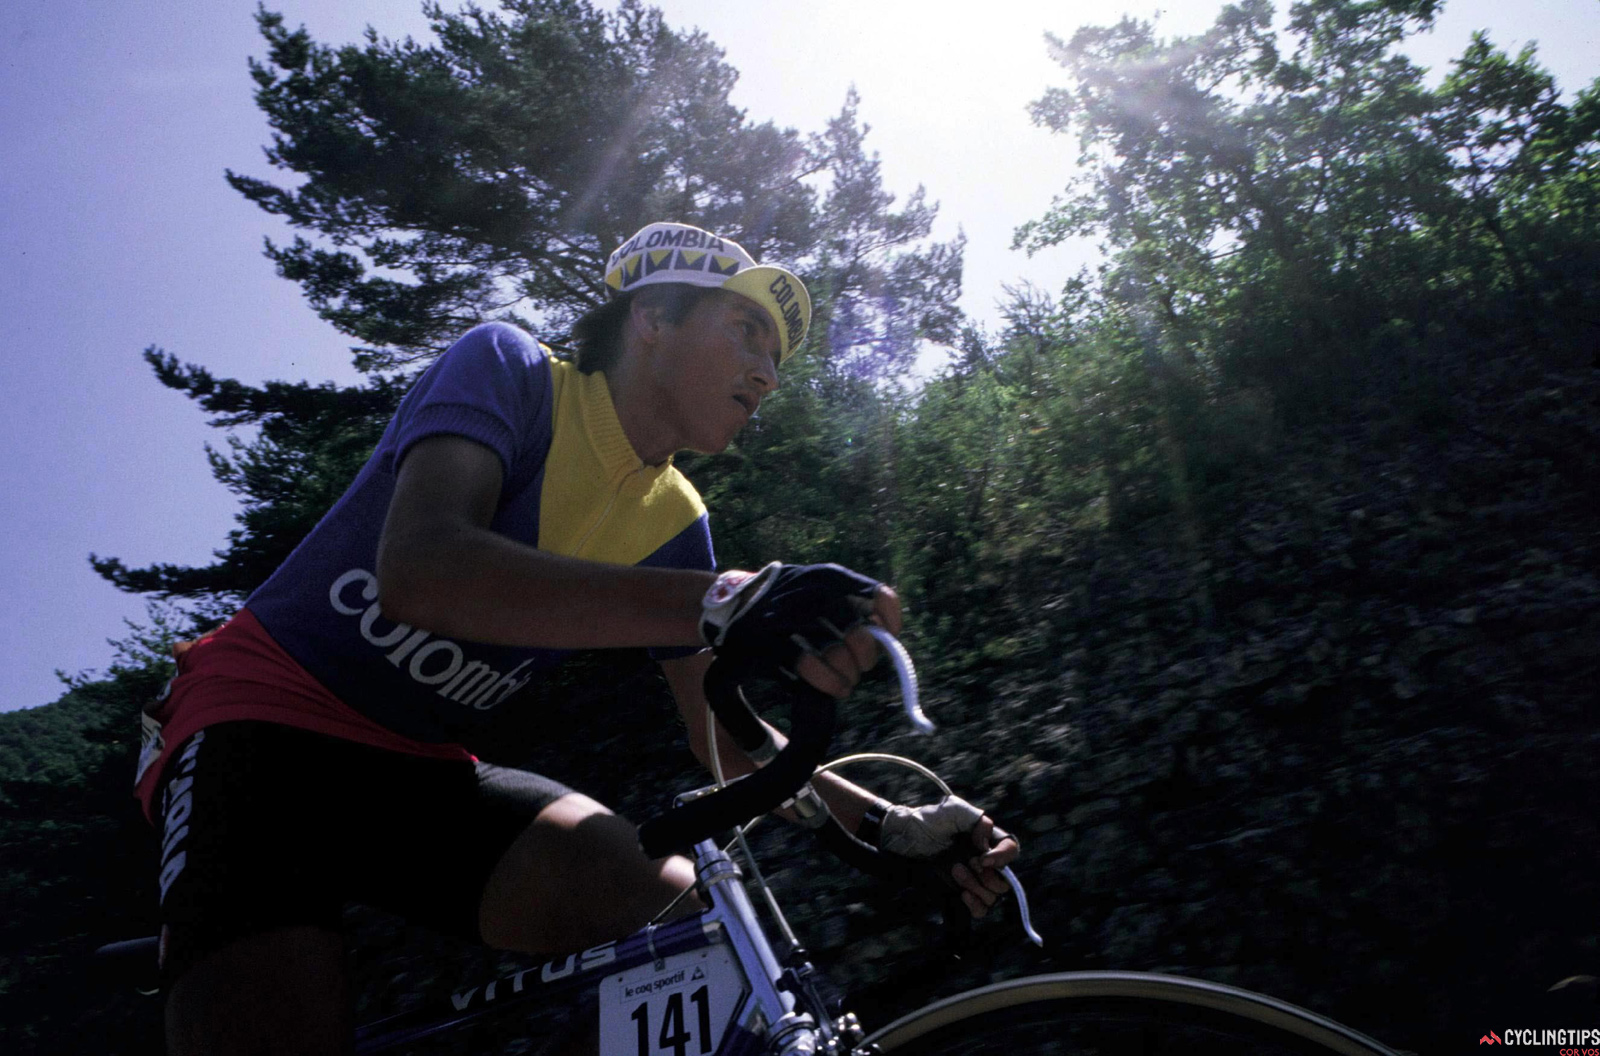 Lucho Herrera was, for many years, one of the country's top riders and represented the first big wave of Colombian riders in the Tour de France.